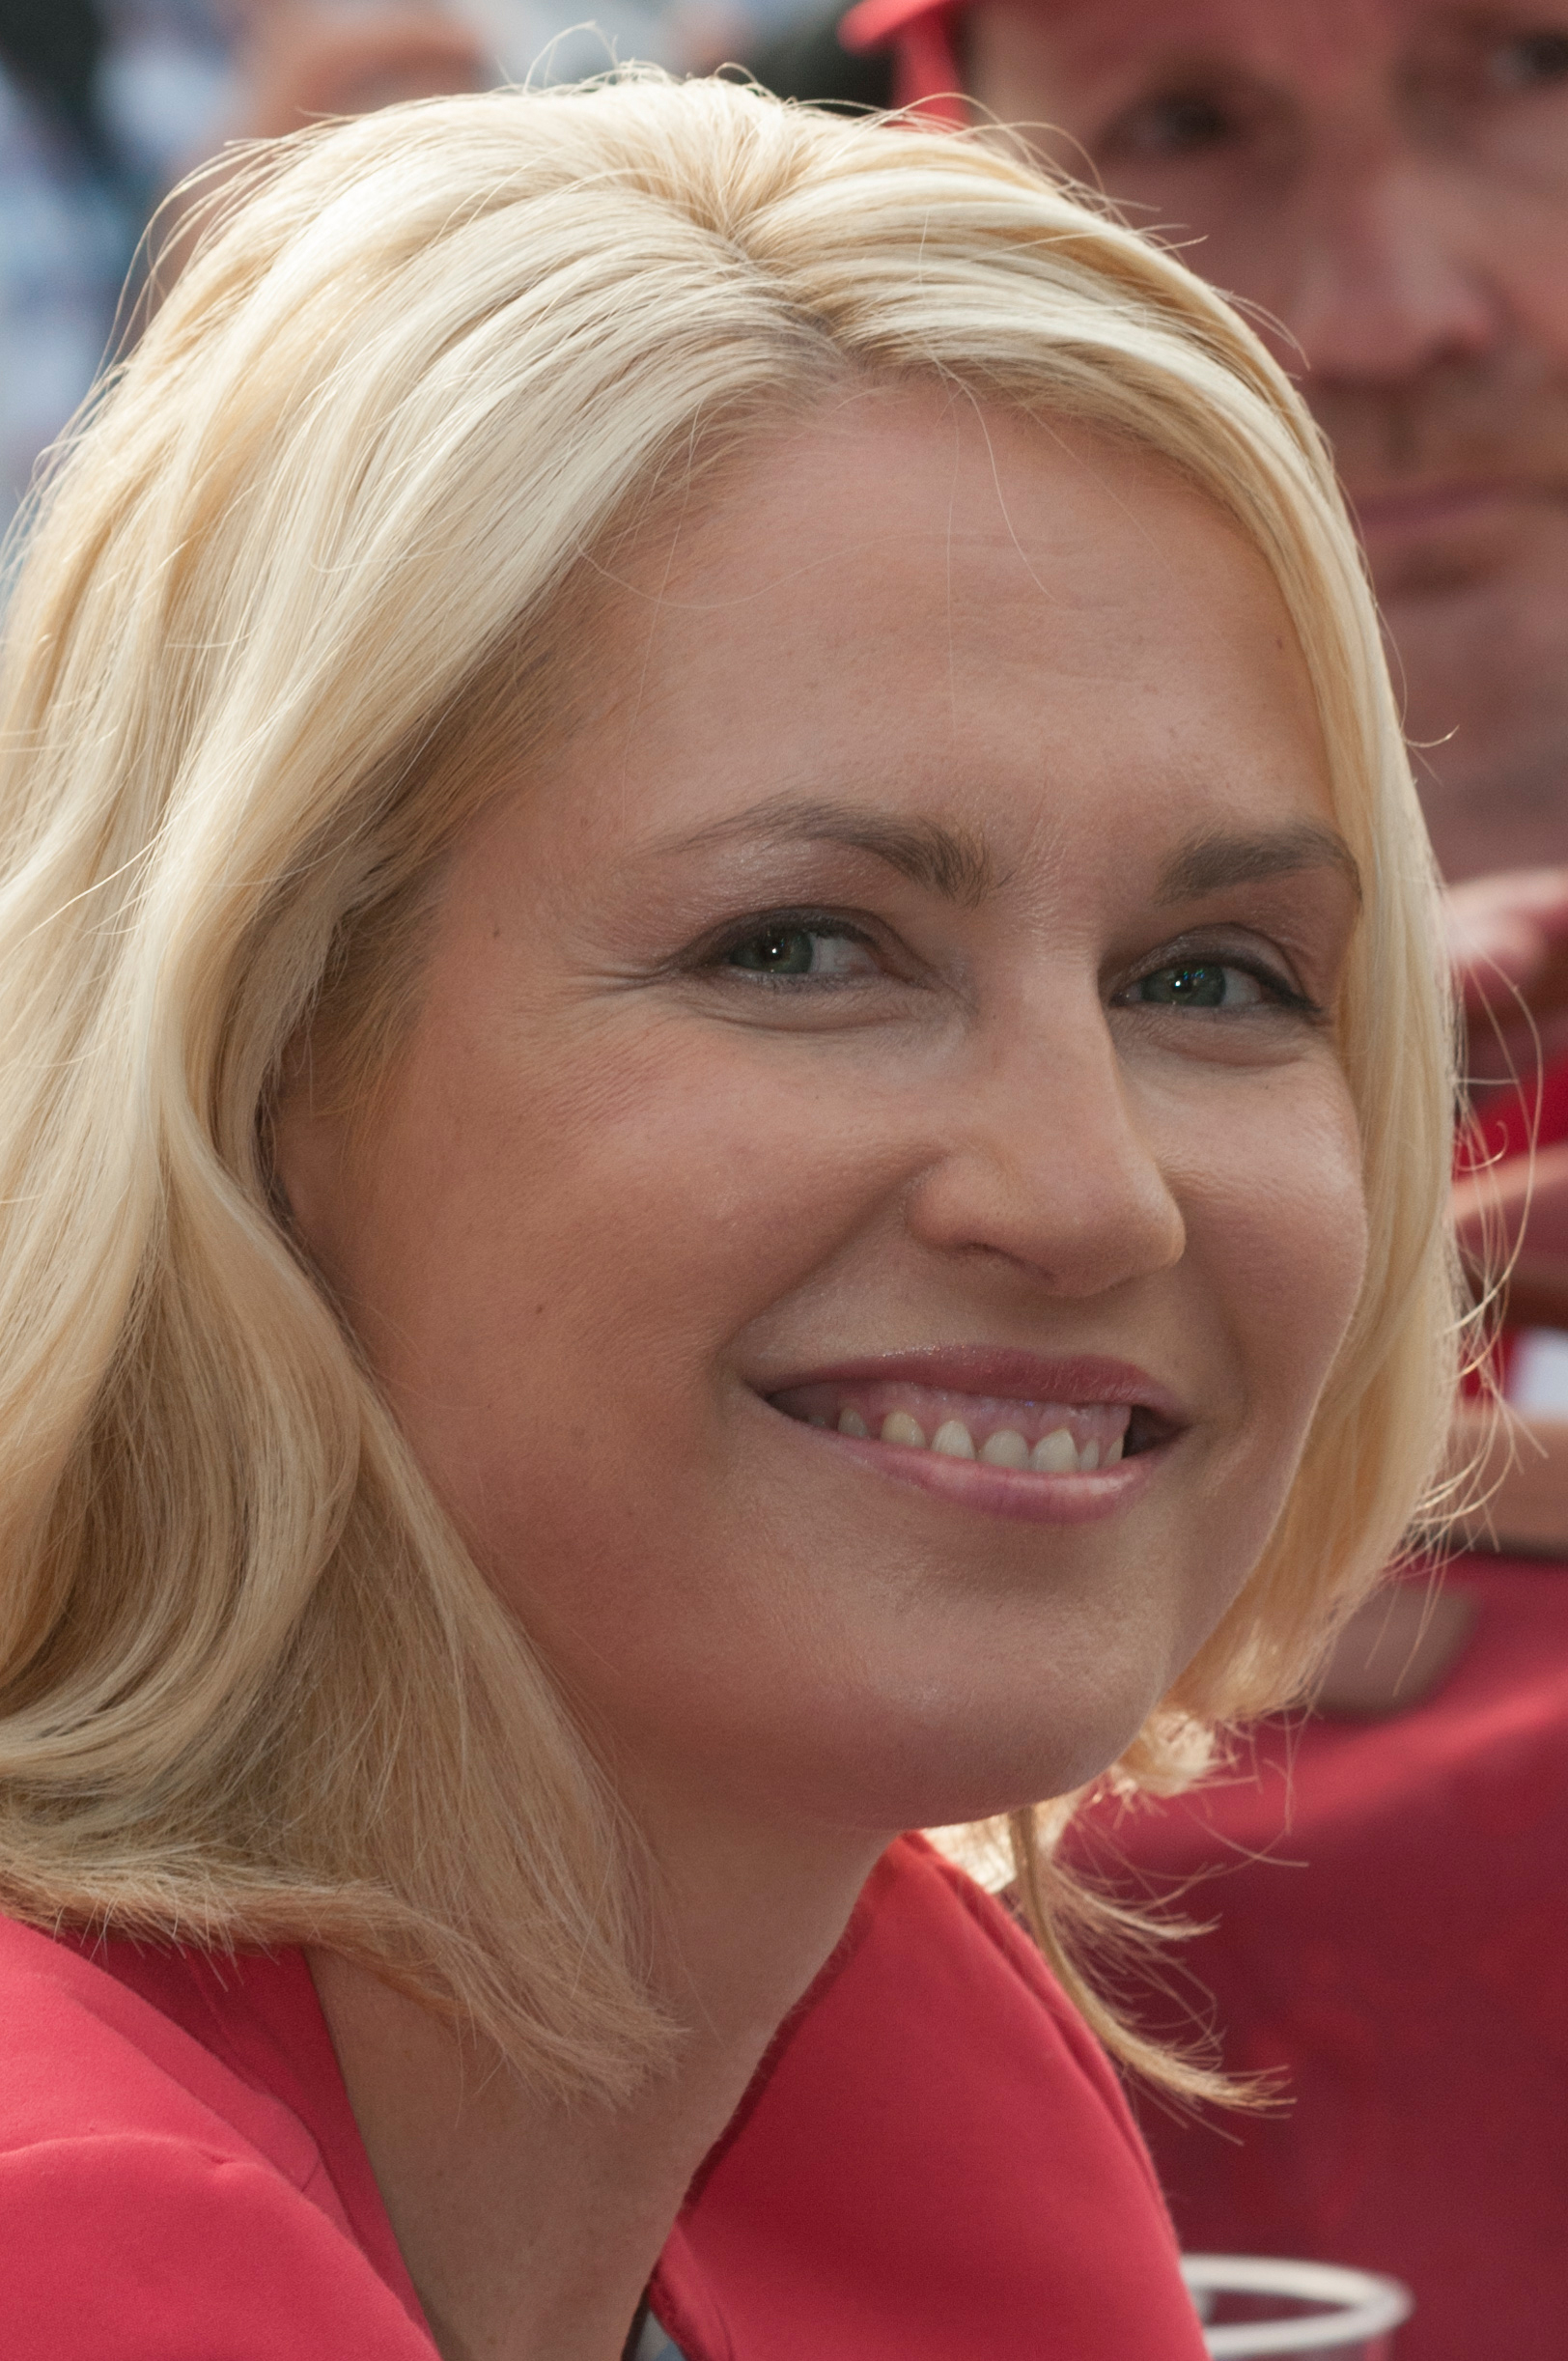 The 44-year old daughter of father (?) and mother(?) Manuela Schwesig in 2018 photo. Manuela Schwesig earned a  million dollar salary - leaving the net worth at 1.5 million in 2018